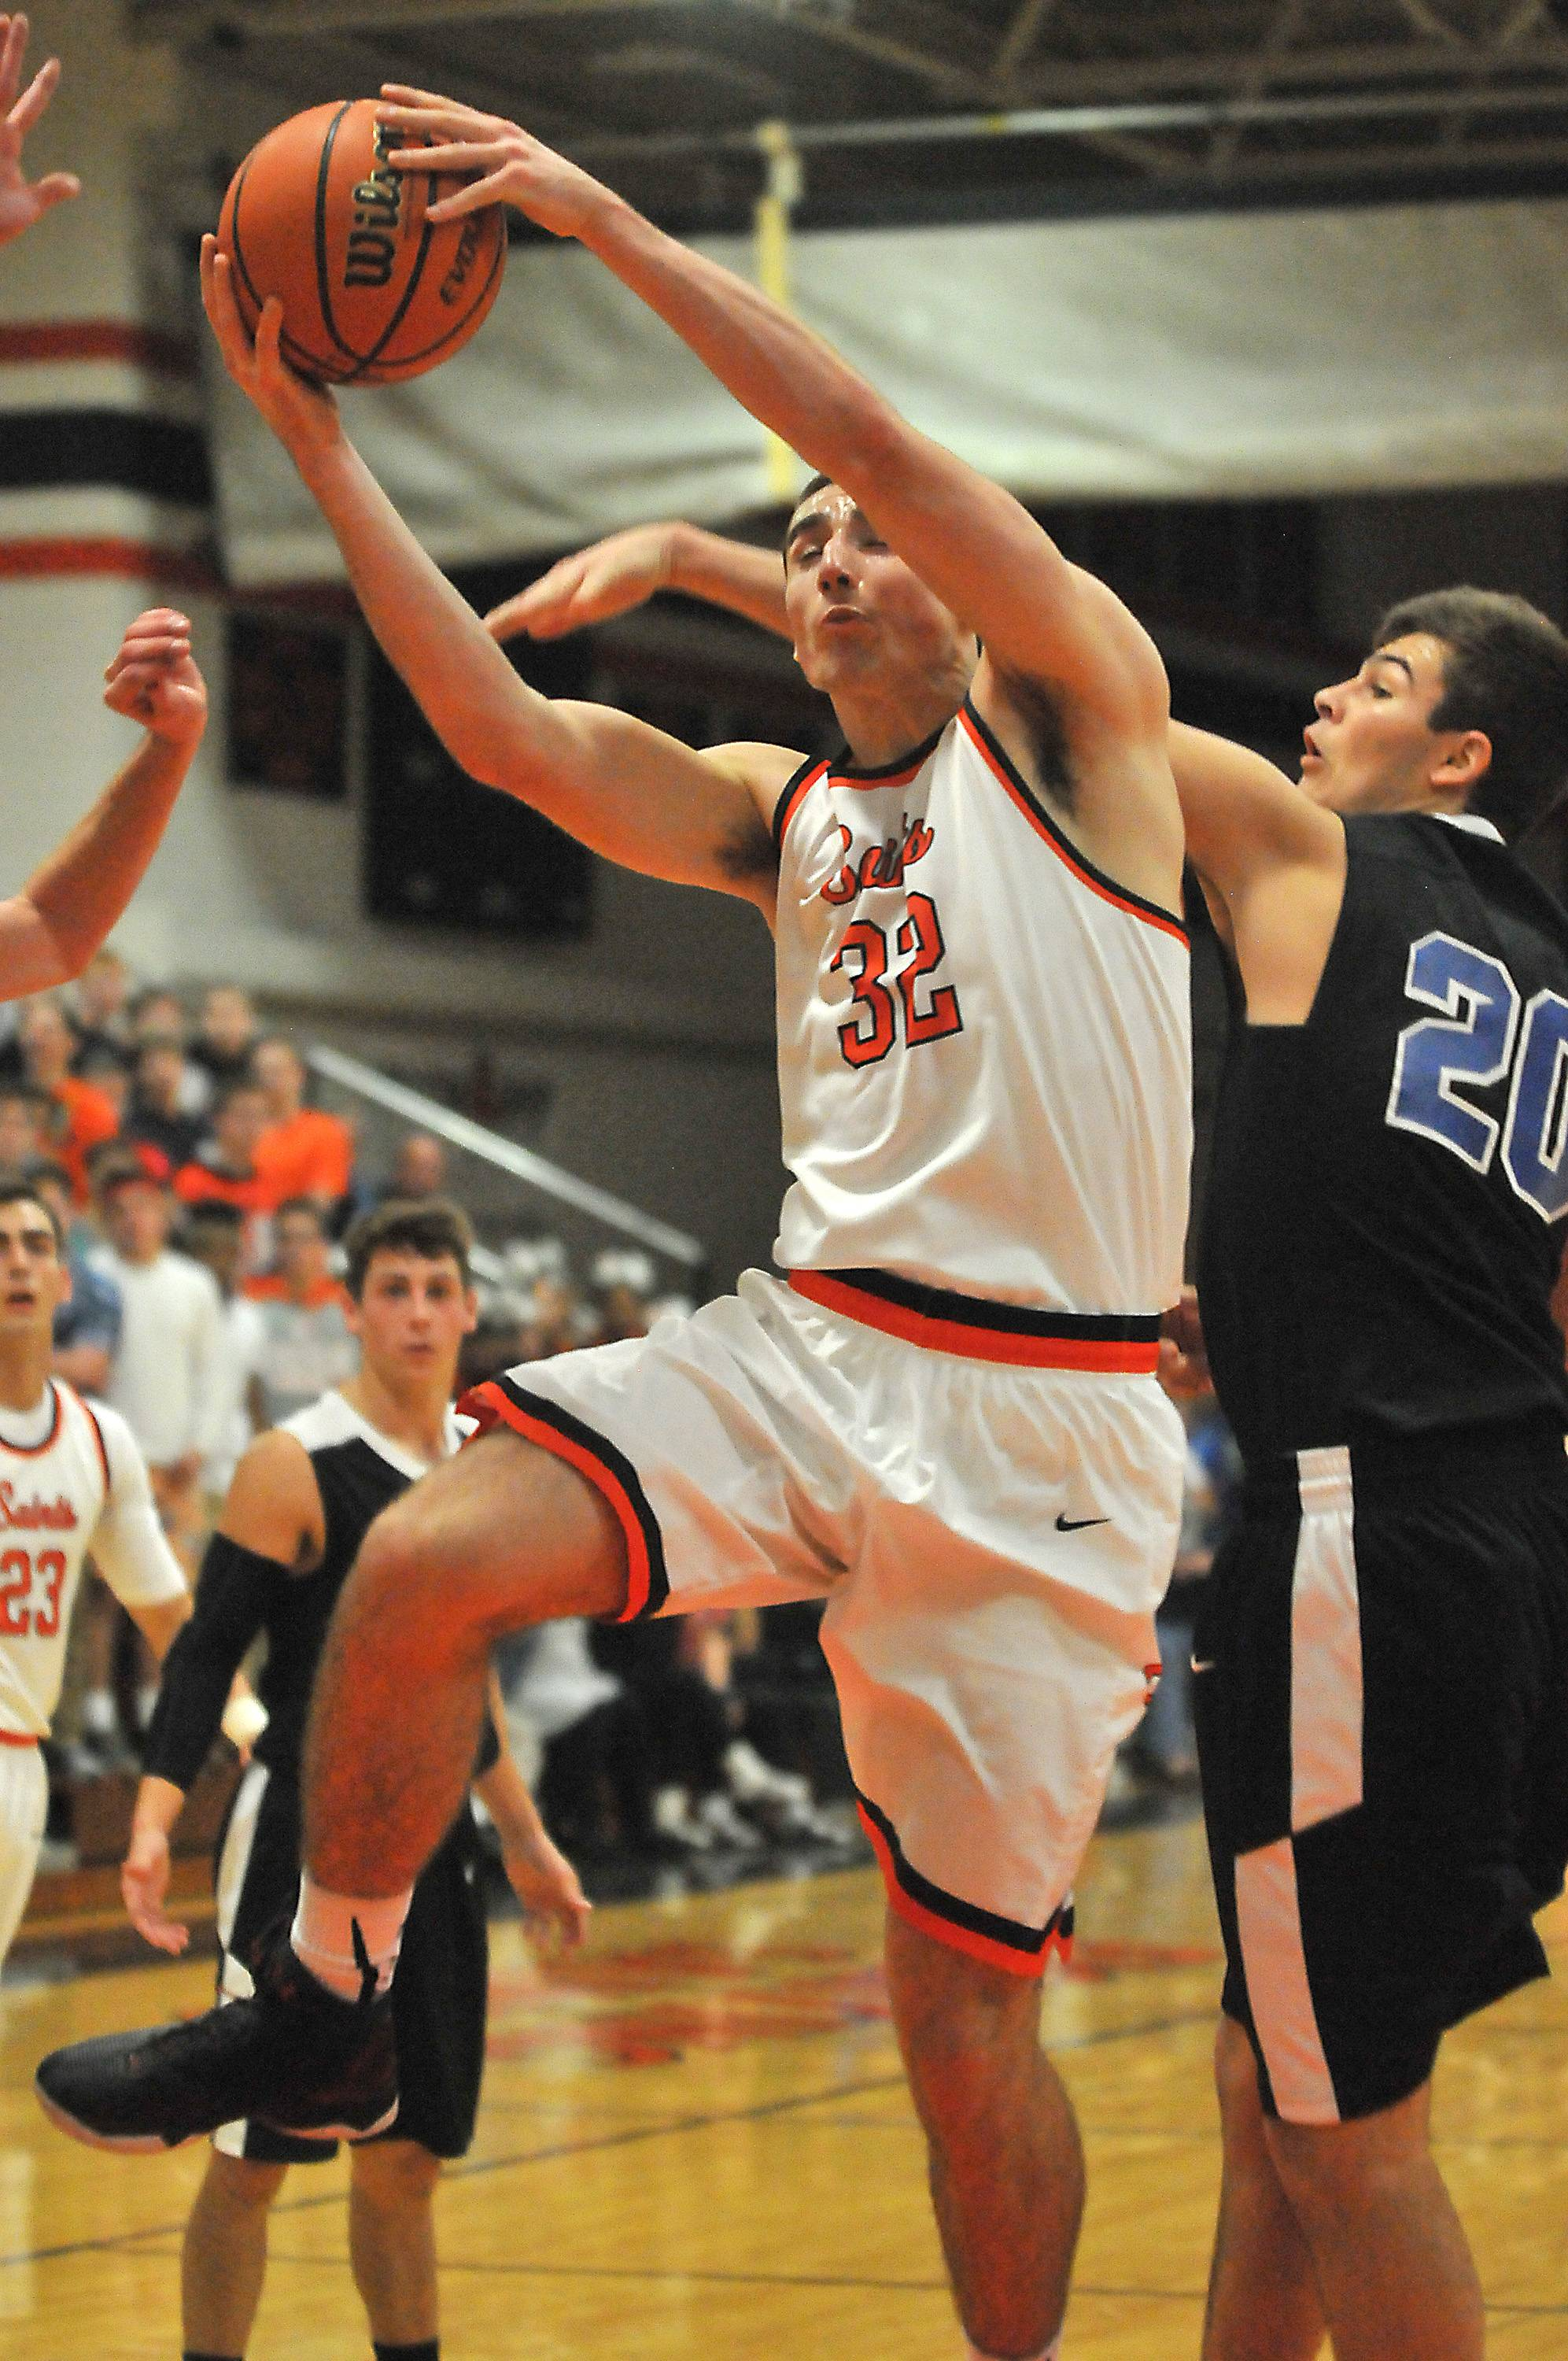 St. Charles East's Justin Hardy drives to the hoop while shadowed by St. Charles North's Kyle King in the second quarter Saturday at East.